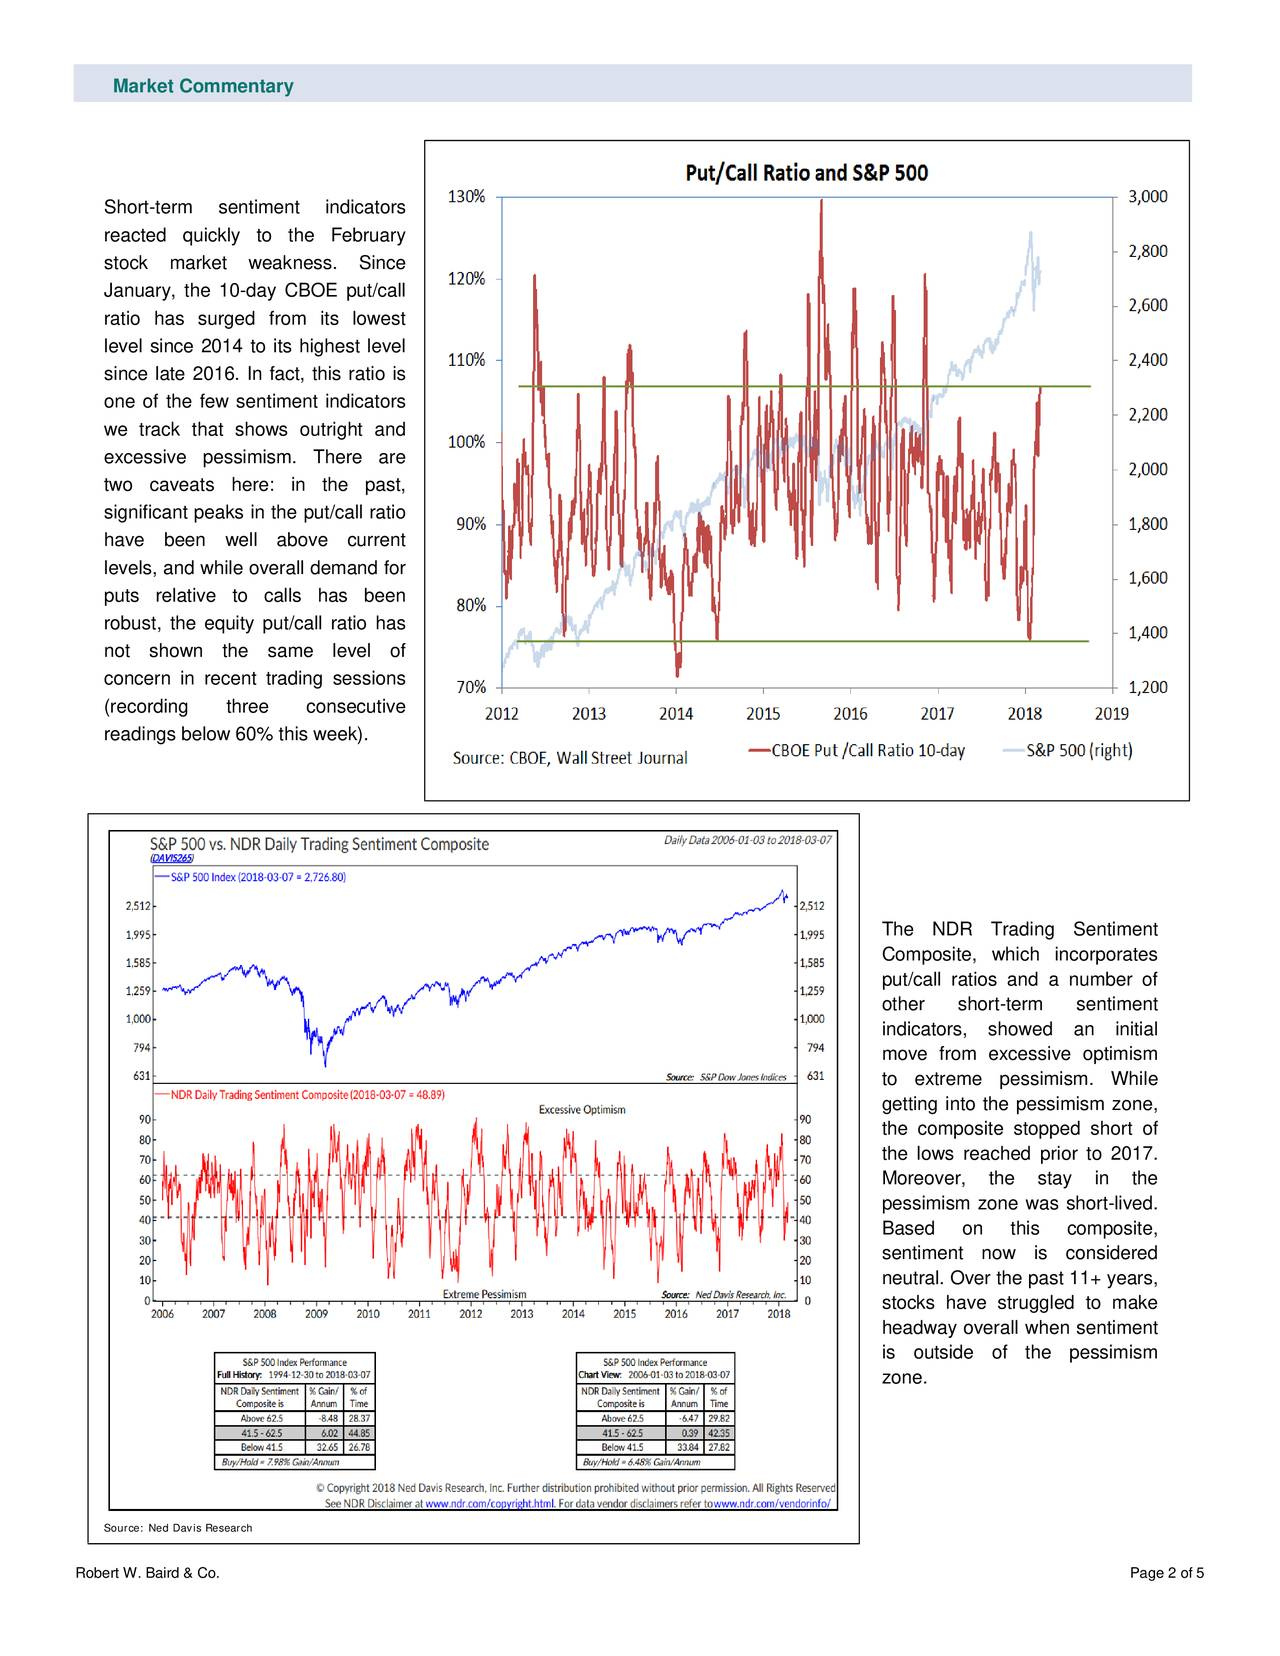 Short-term sentiment indicators reacted quickly to the February stock market weakness. Since January, the 10-day CBOE put/call ratio has surged from its lowest level since 2014 to its highest level since late 2016. In fact, this ratio is one of the few sentiment indicators we track that shows outright and excessive pessimism. There are two caveats here: in the past , significant peaks in the put/call ratio have been well above current levels, and while overall demand for puts relative to calls has been robust, the equity put/call ratio has not shown the same level of concern in recent trading sessions (recording three consecutive readings below 60% this week). The NDR Trading Sentiment Composite, which incorporates put/call ratios and a number of other short -term sentiment indicators, showed an initial move from excessive optimism to extreme pessimism. While getting into the pessimism zone, the composite stopped short of the lows reached prior to 2017. Moreover, the stay in the pessimism zone was short -lived. Based on this composite, sentiment now is considered neutral. Over the past 11+ years, stocks have struggled to make headway overall when sentiment is outside of the pessimism zone. Source: Ned Davis Research Robert W. Baird & Co. Page 2 of 5